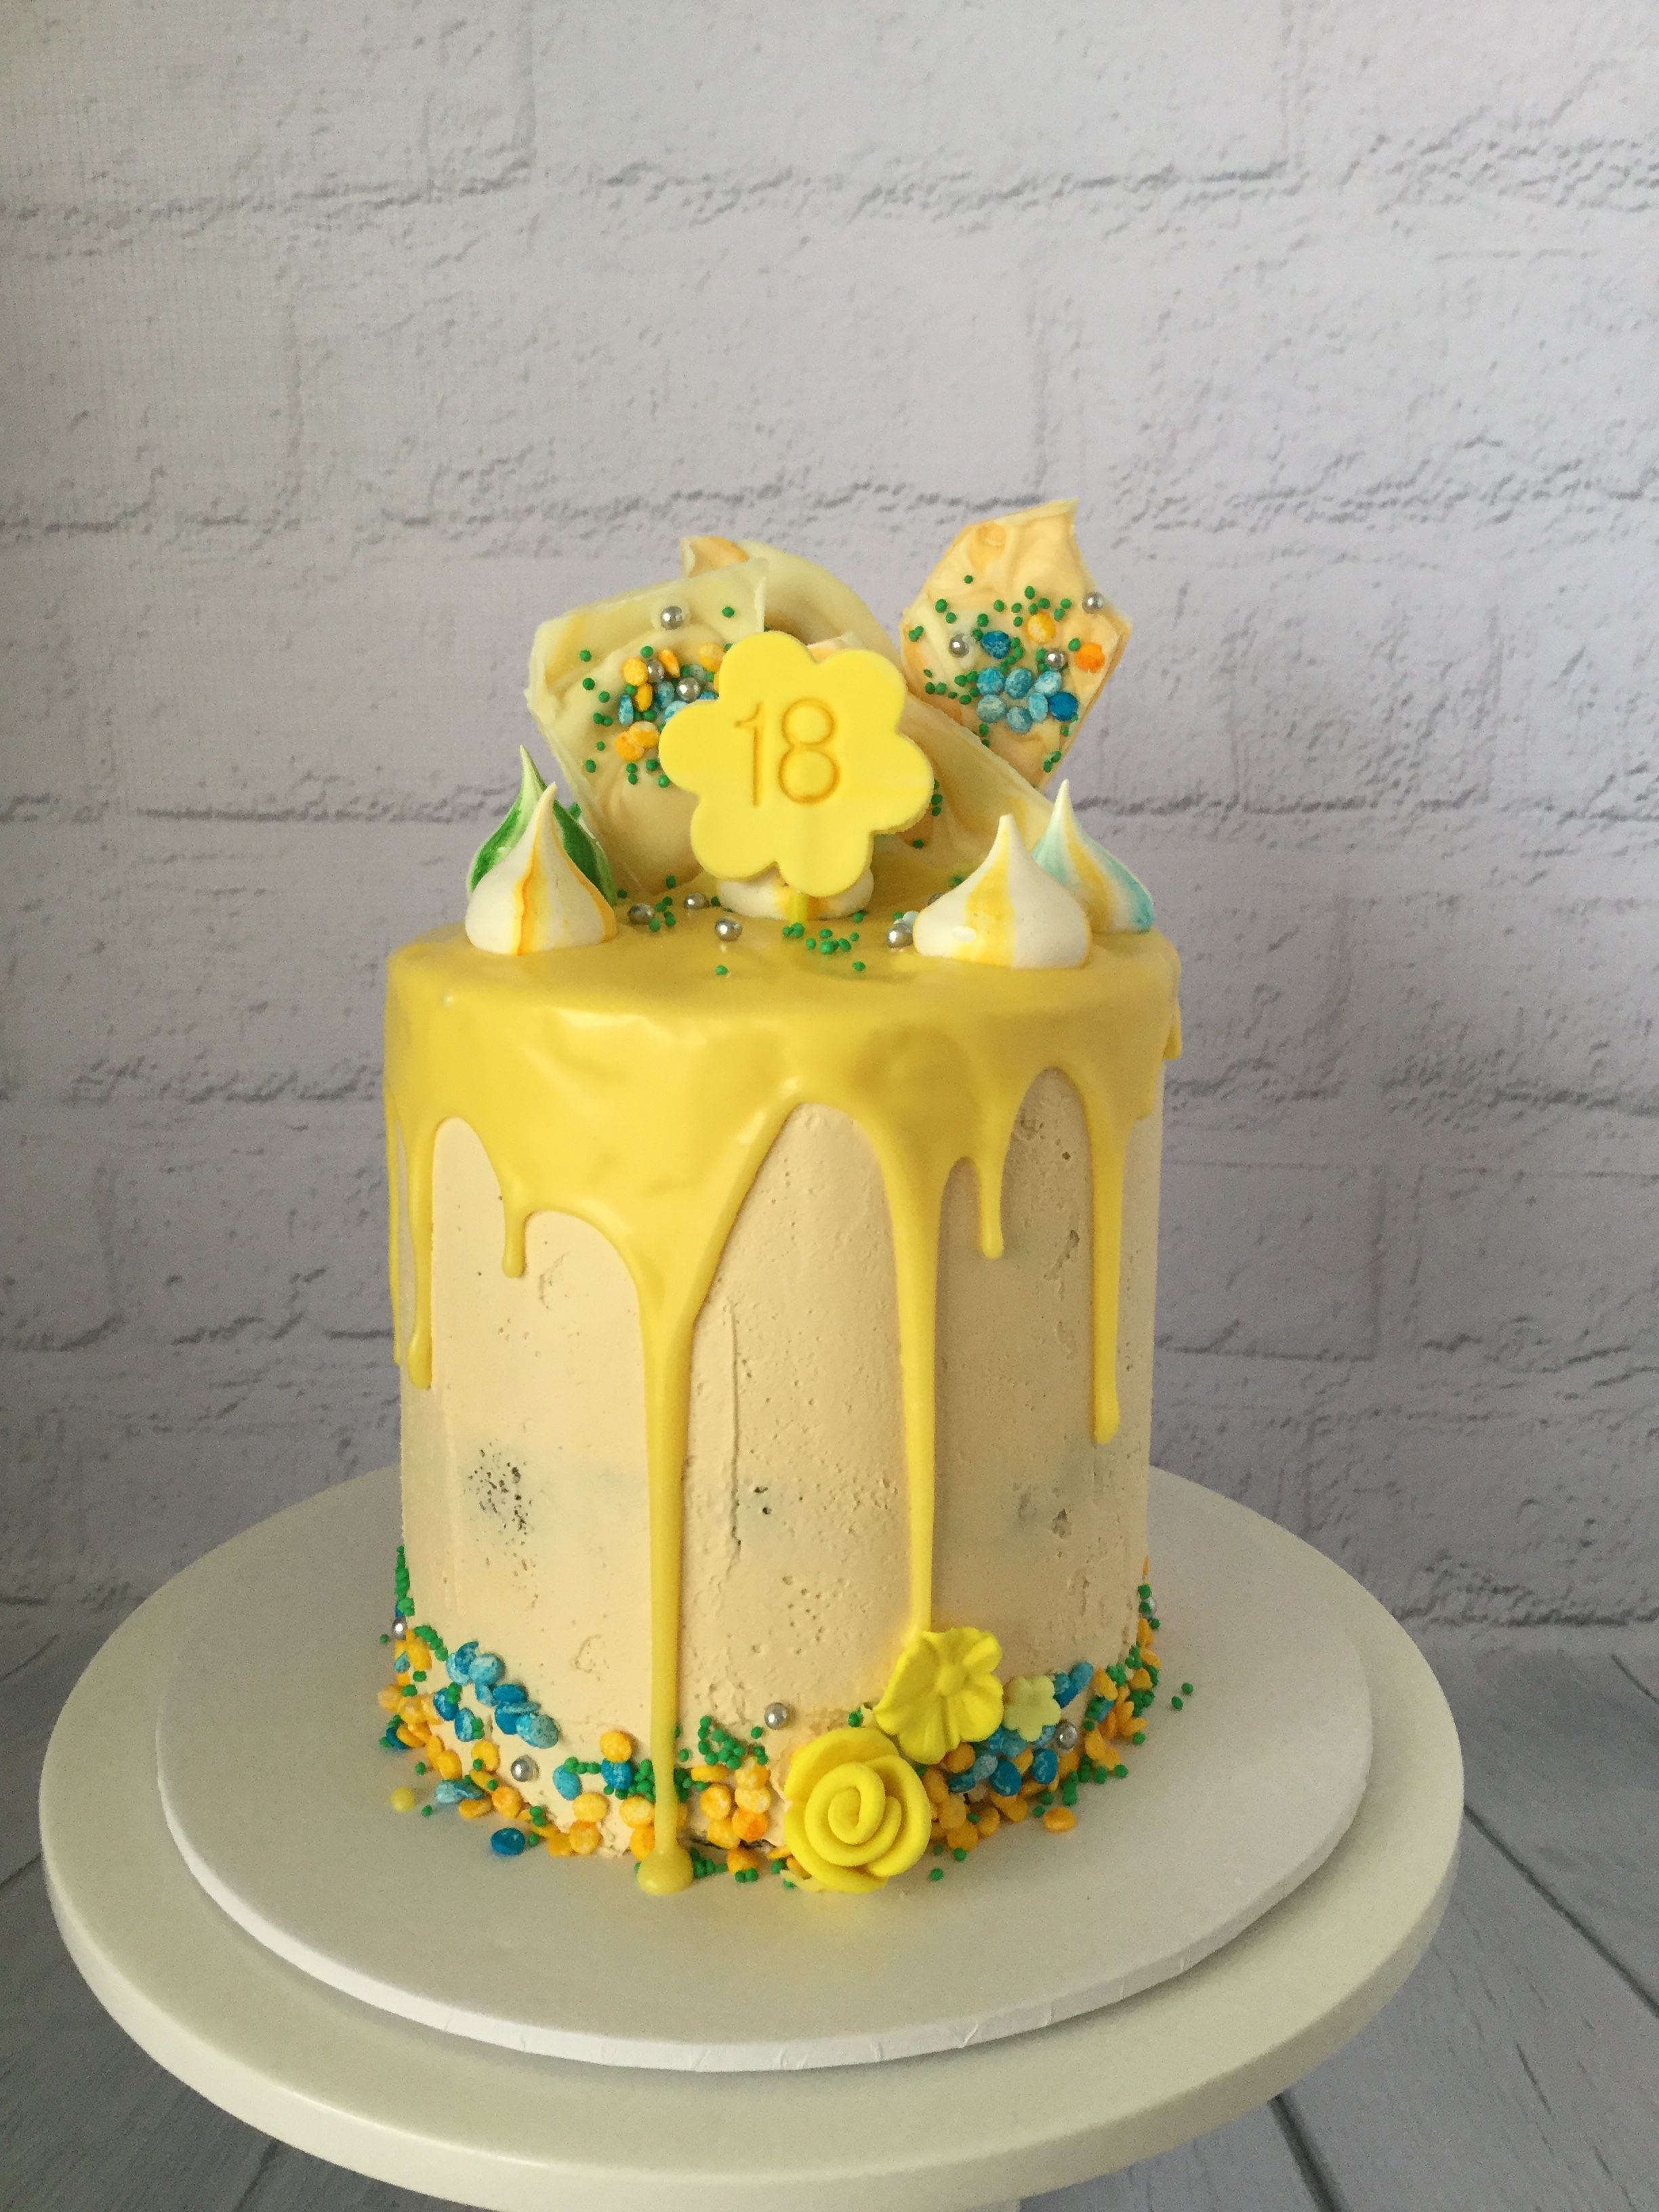 Brilliant 18Th Birthday Cake Yellow Drip Cake With Images Yellow Personalised Birthday Cards Paralily Jamesorg